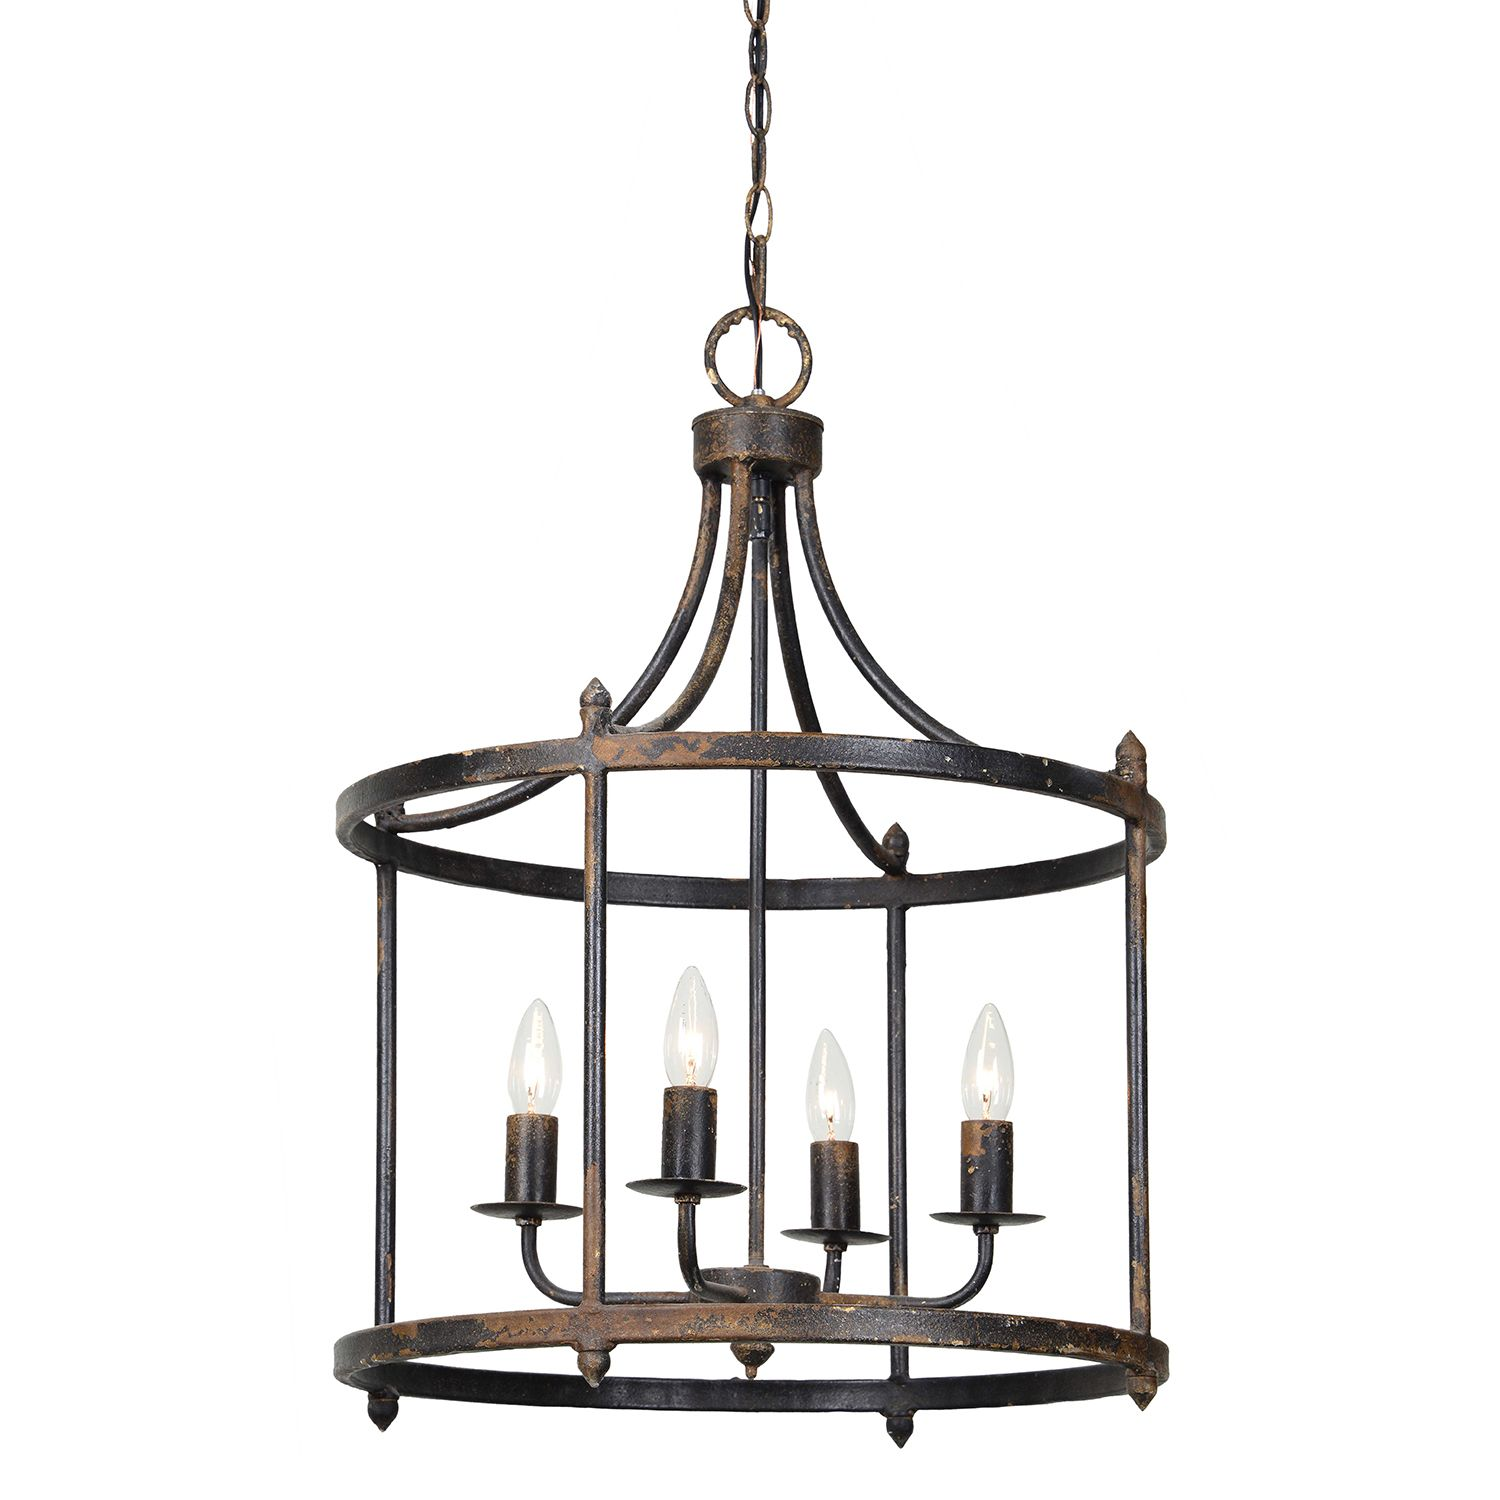 Forty West Arlington Rustic Black 28 Inch Four Light Chandelier Available At Springlights Umhlanga And Hil Lantern Chandelier Round Chandelier Metal Chandelier